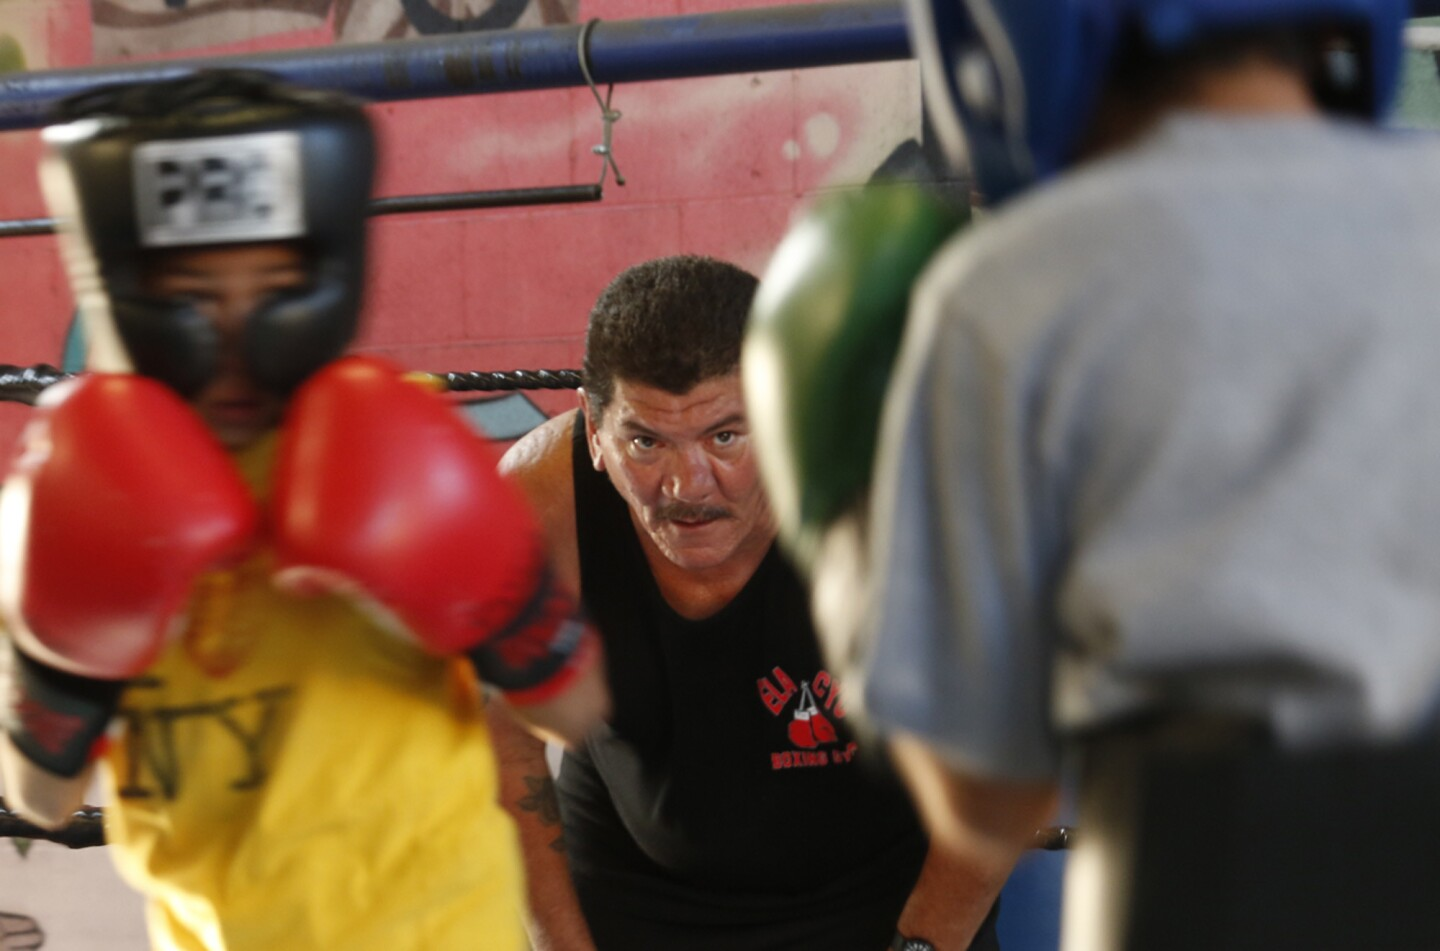 Boxing coach Paul Hernandez, 58, coaches and referees a sparring match between two young boxers at the East Los Angeles Community Youth Center in East Los Angeles on July 1. Hernandez has been fighting to keep the gym from closing due to the possible purchase of the property by a charter school.